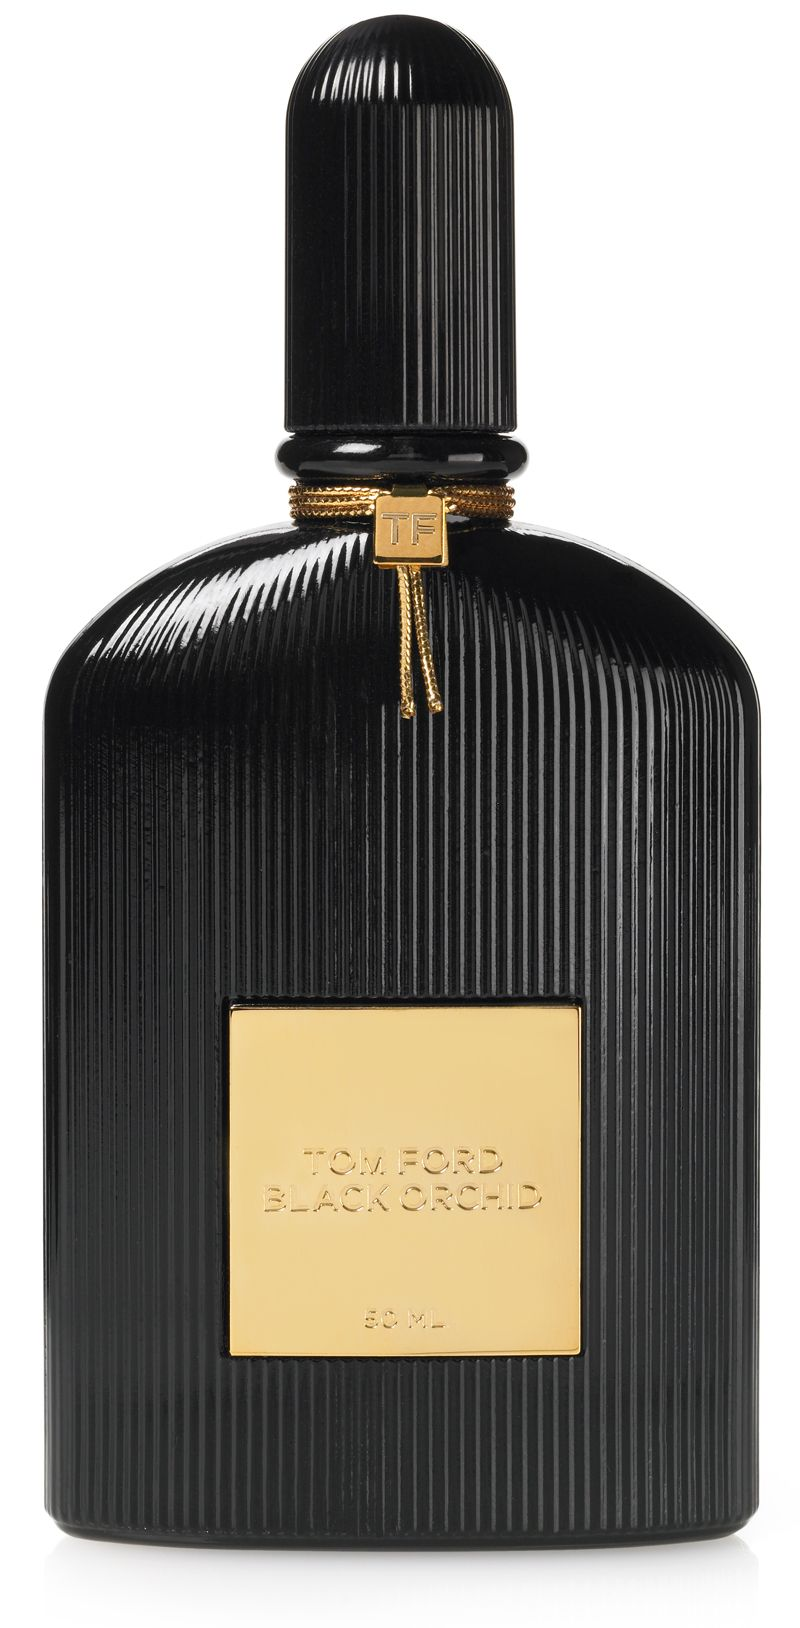 Black Orchid EDP 50ml